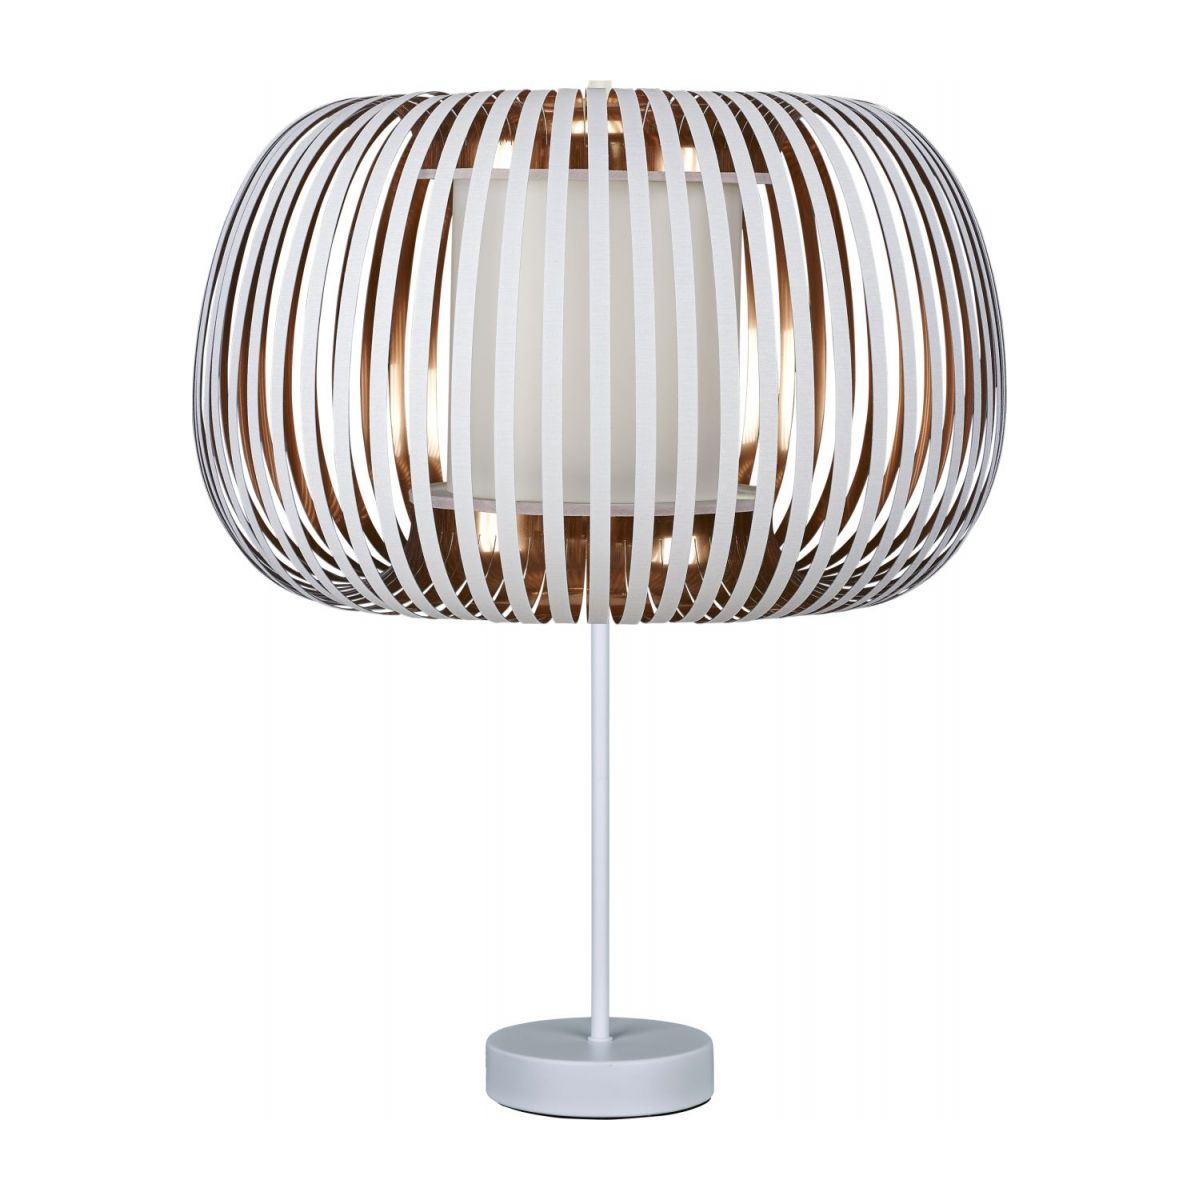 Ceiling lamp in PVC, white and copper n°3